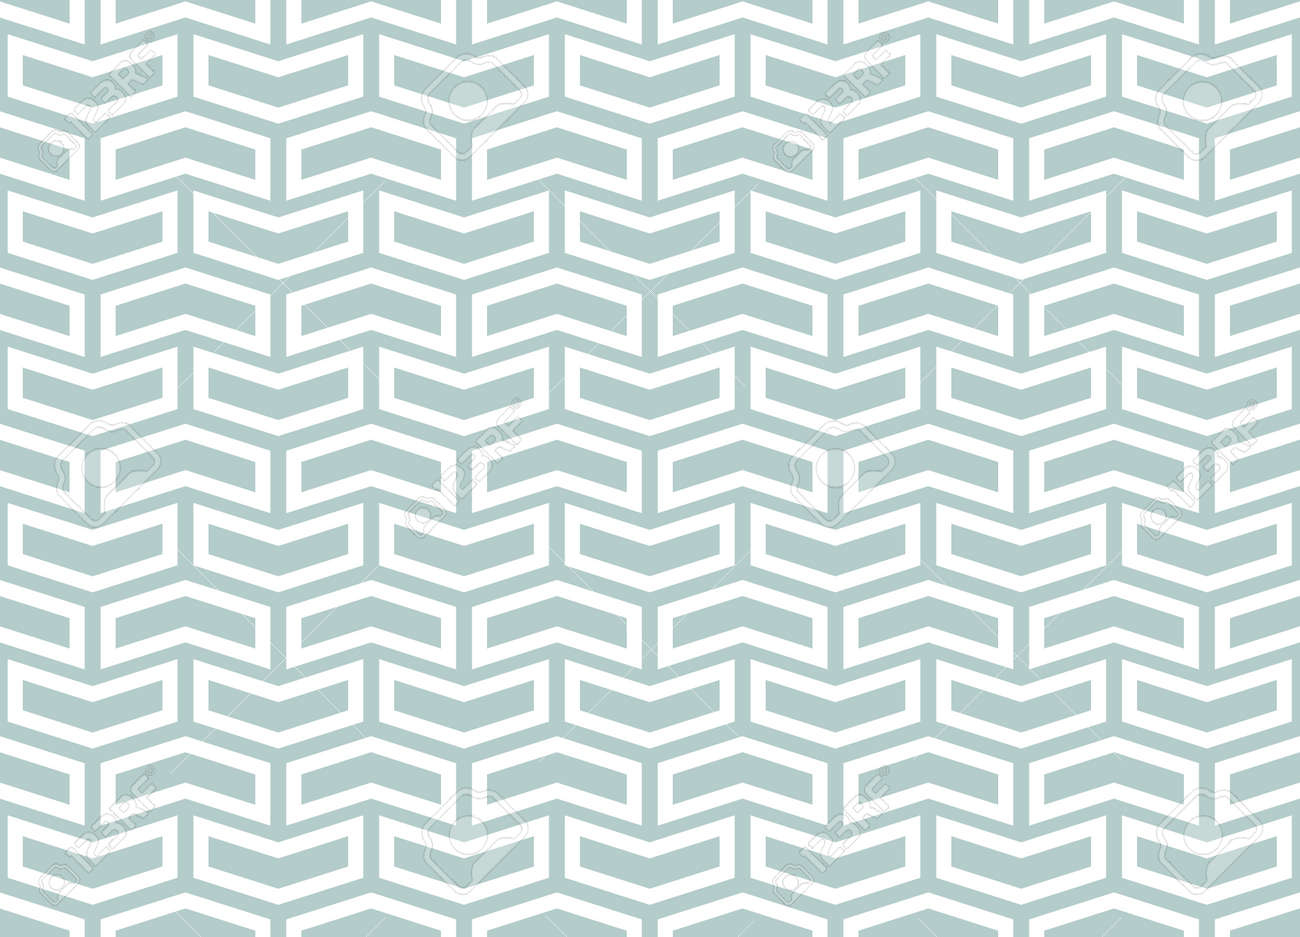 Geometric vector pattern with light blue and white . Geometric modern ornament. Seamless abstract background - 169499801